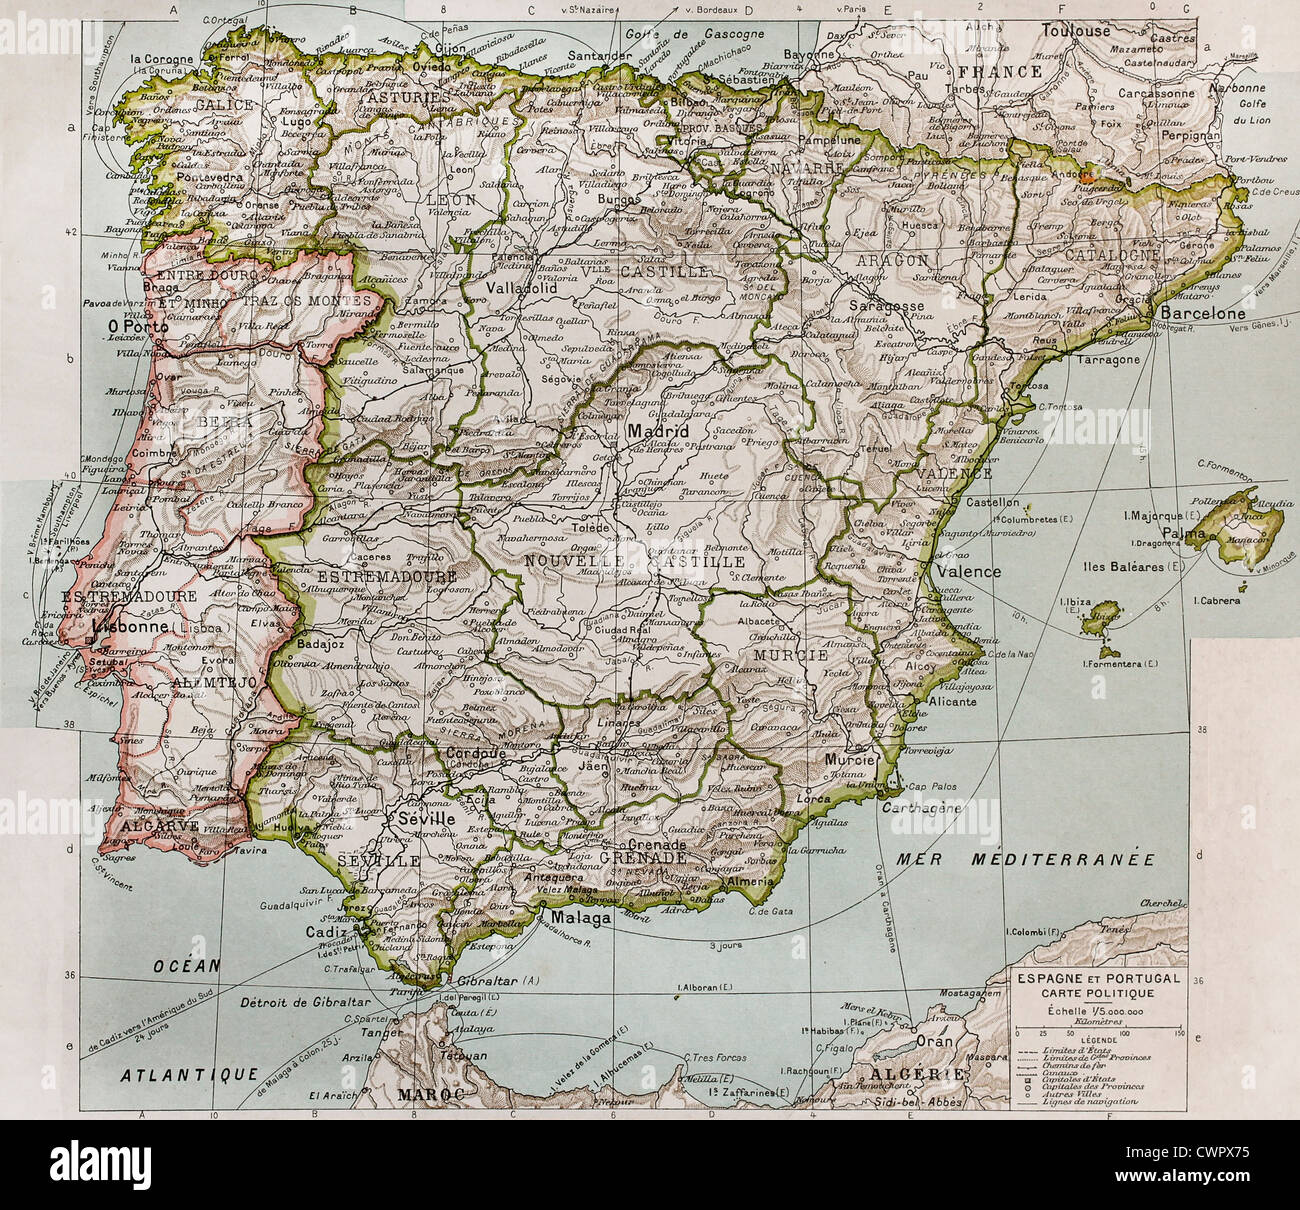 Spain And Portugal Political Map Stock Photo 50290665 Alamy